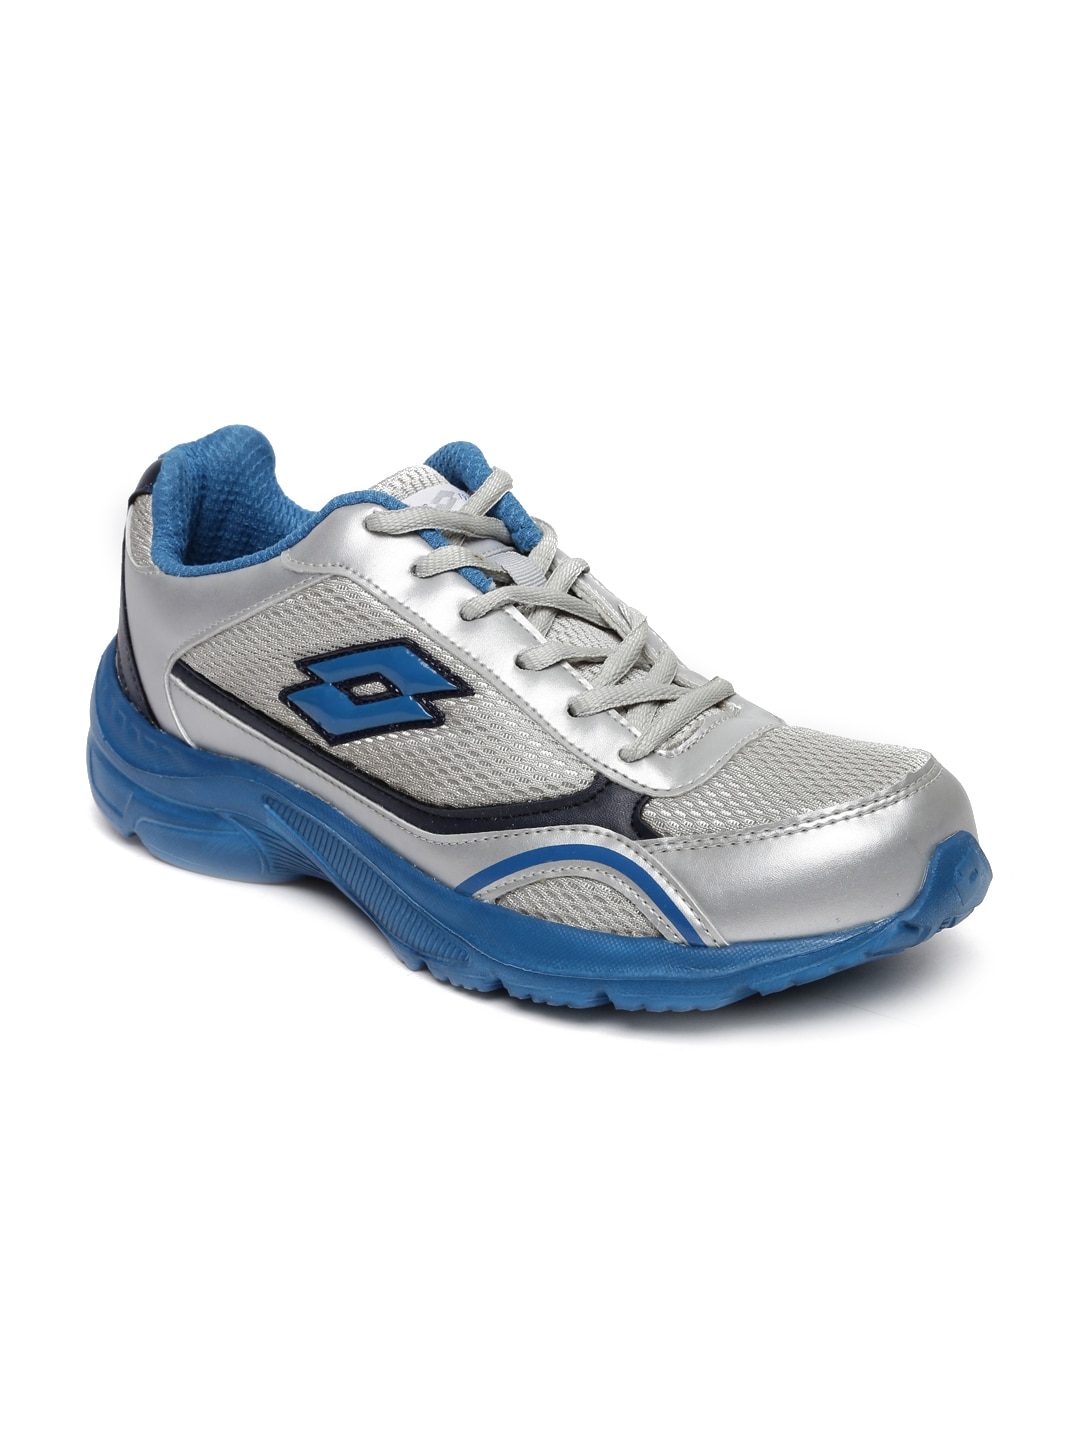 b49bc8b4429d Football Sports Shoes - Buy Football Sports Shoes Online in India